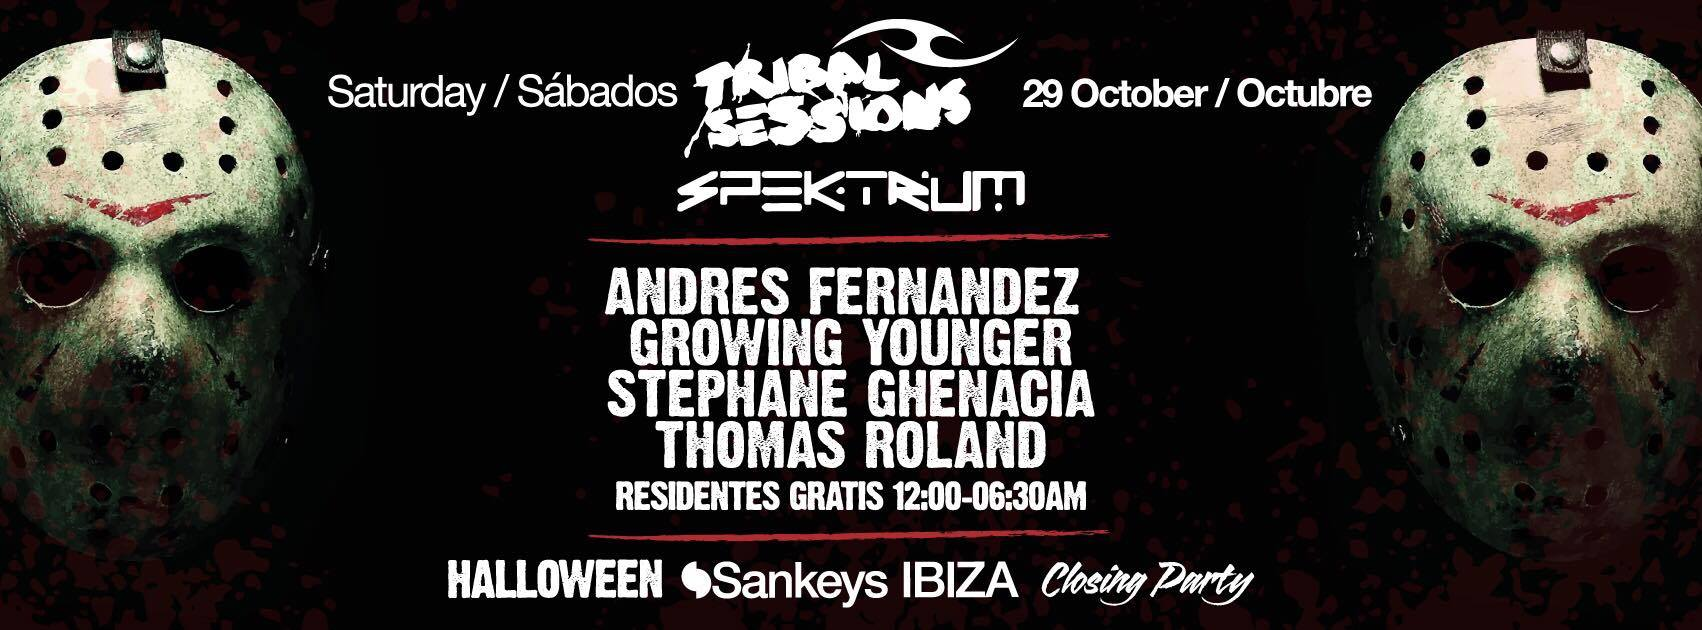 Halloween in Ibiza: the party guide! Pacha, Hard rock hotel ...